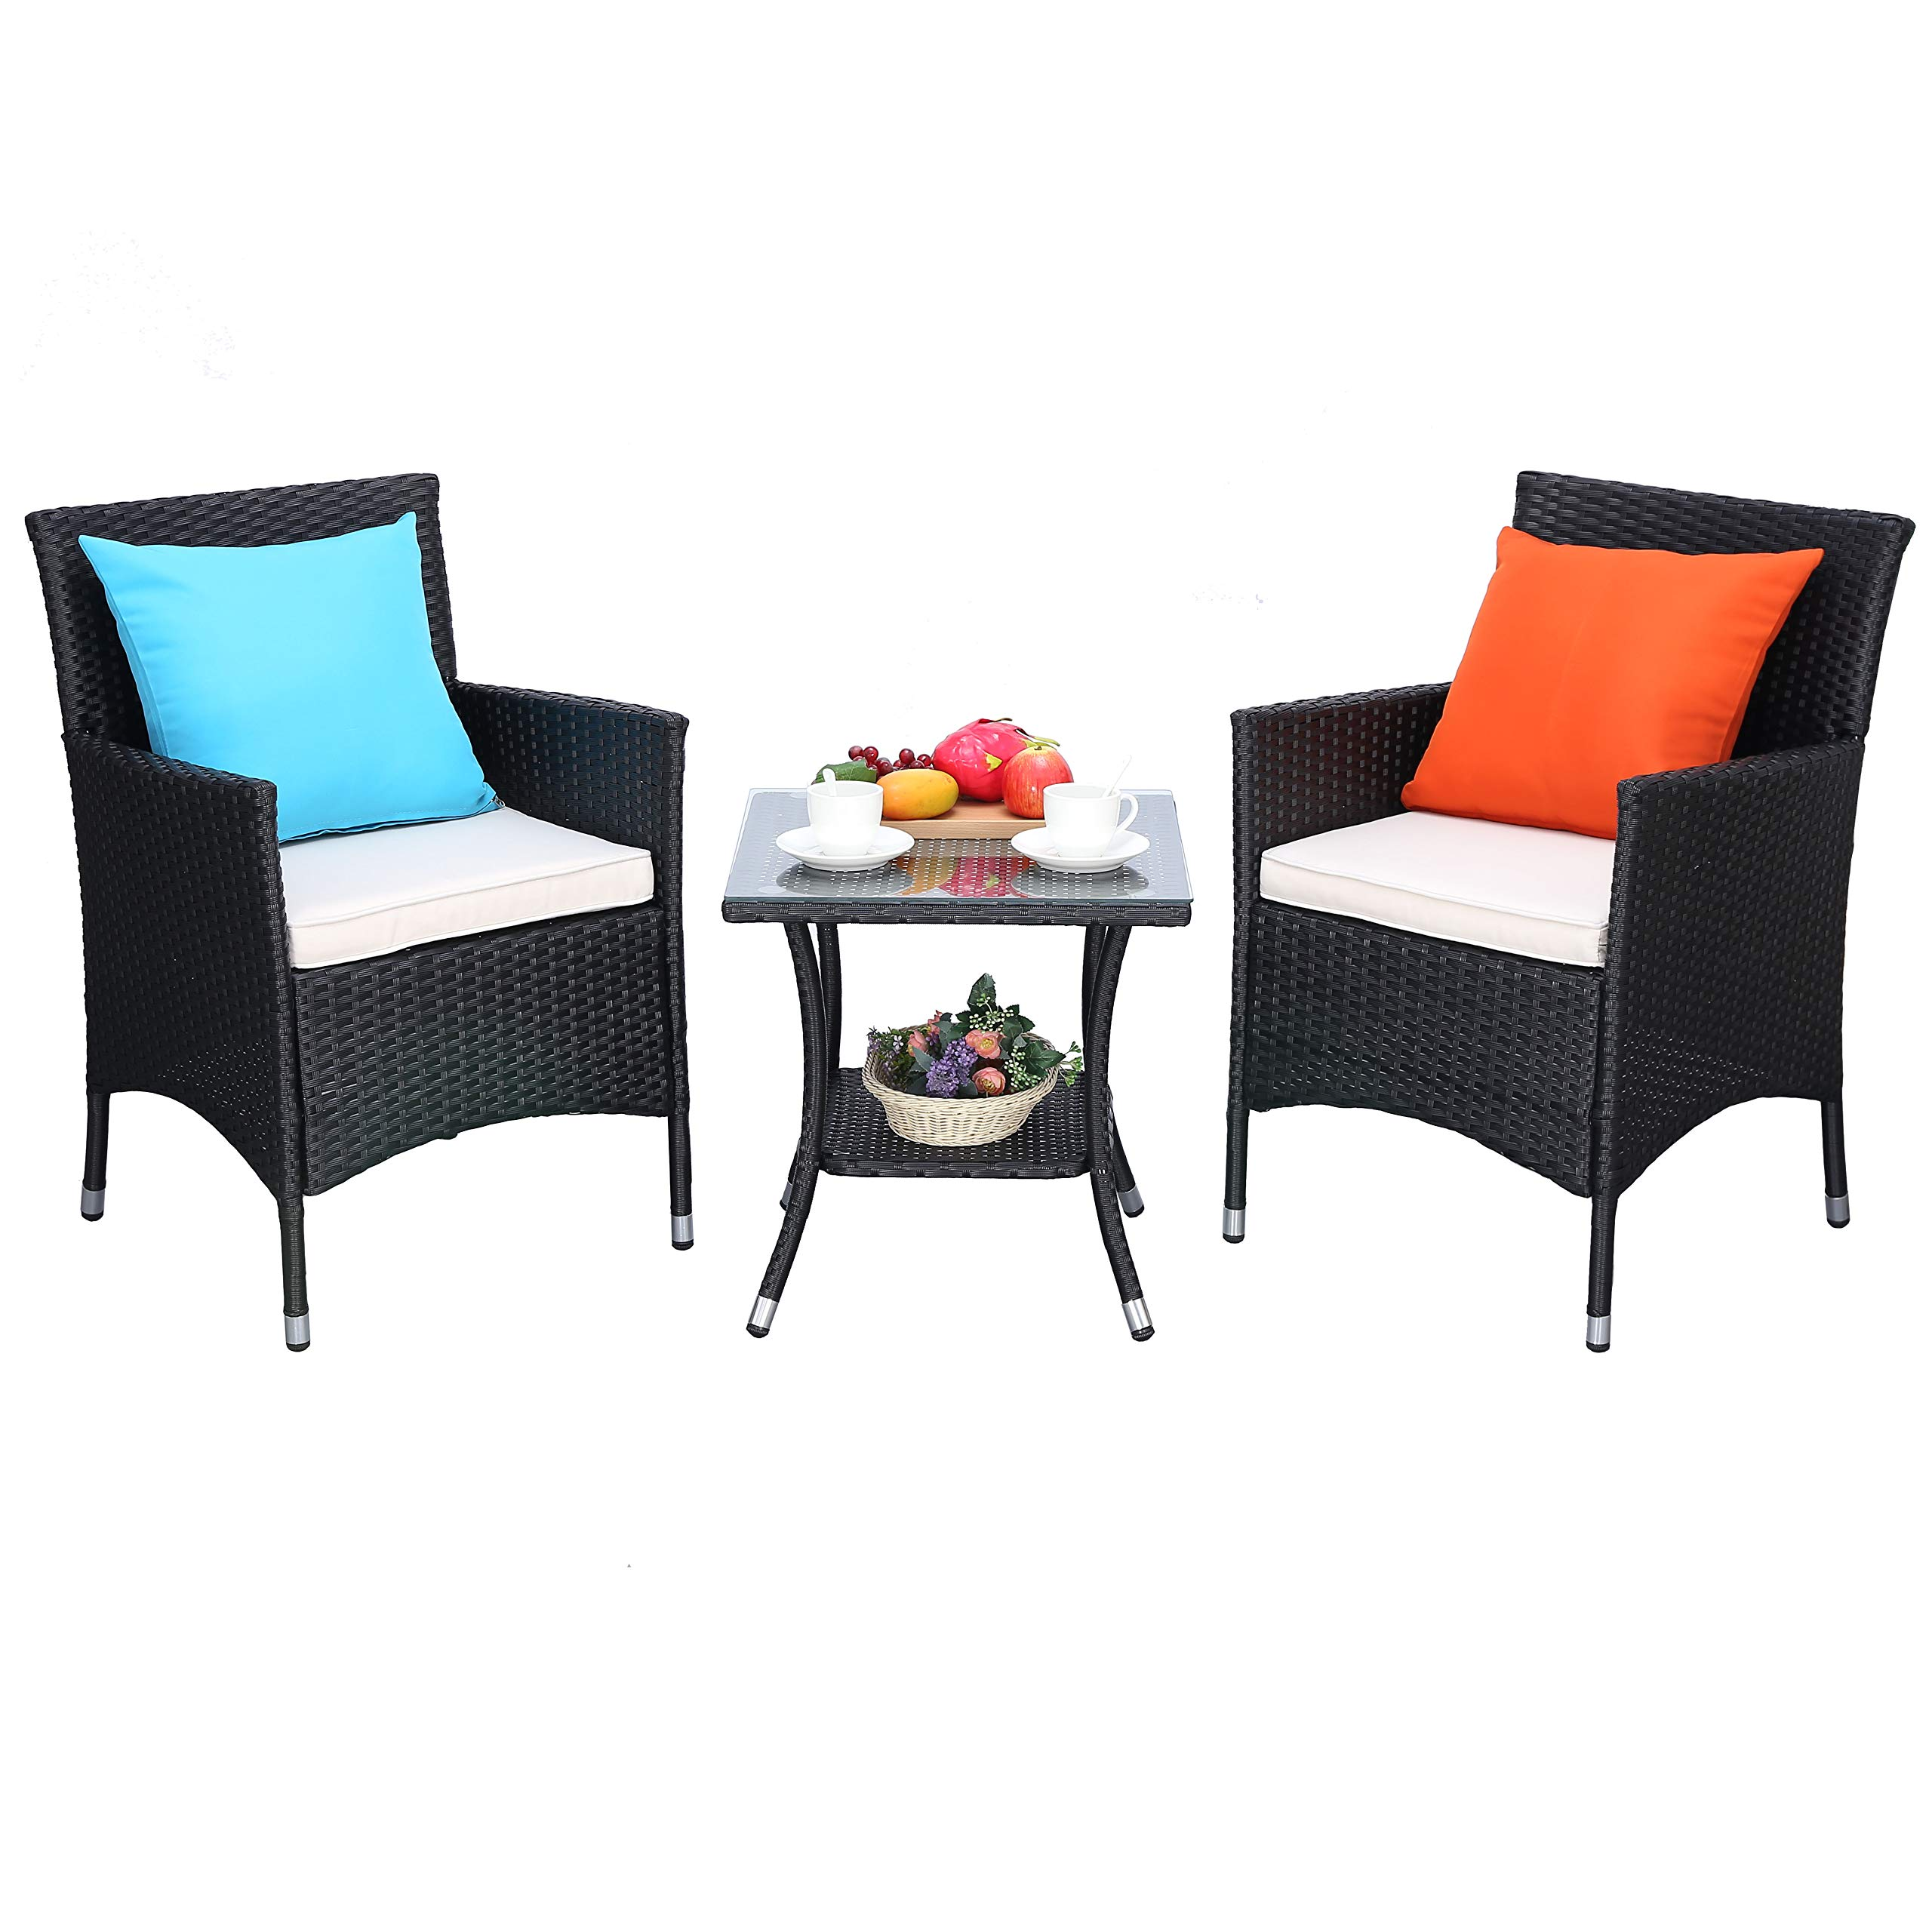 Do4U 3 Pieces Patio Furniture Set Outdoor Wicker Conversation Set Cushioned PE Wicker Bistro Set Rattan Chairs with Coffee Table | Porch, Backyard, Pool Garden | Dining Chairs (961-BLK-BEG) by Do4U (Image #1)